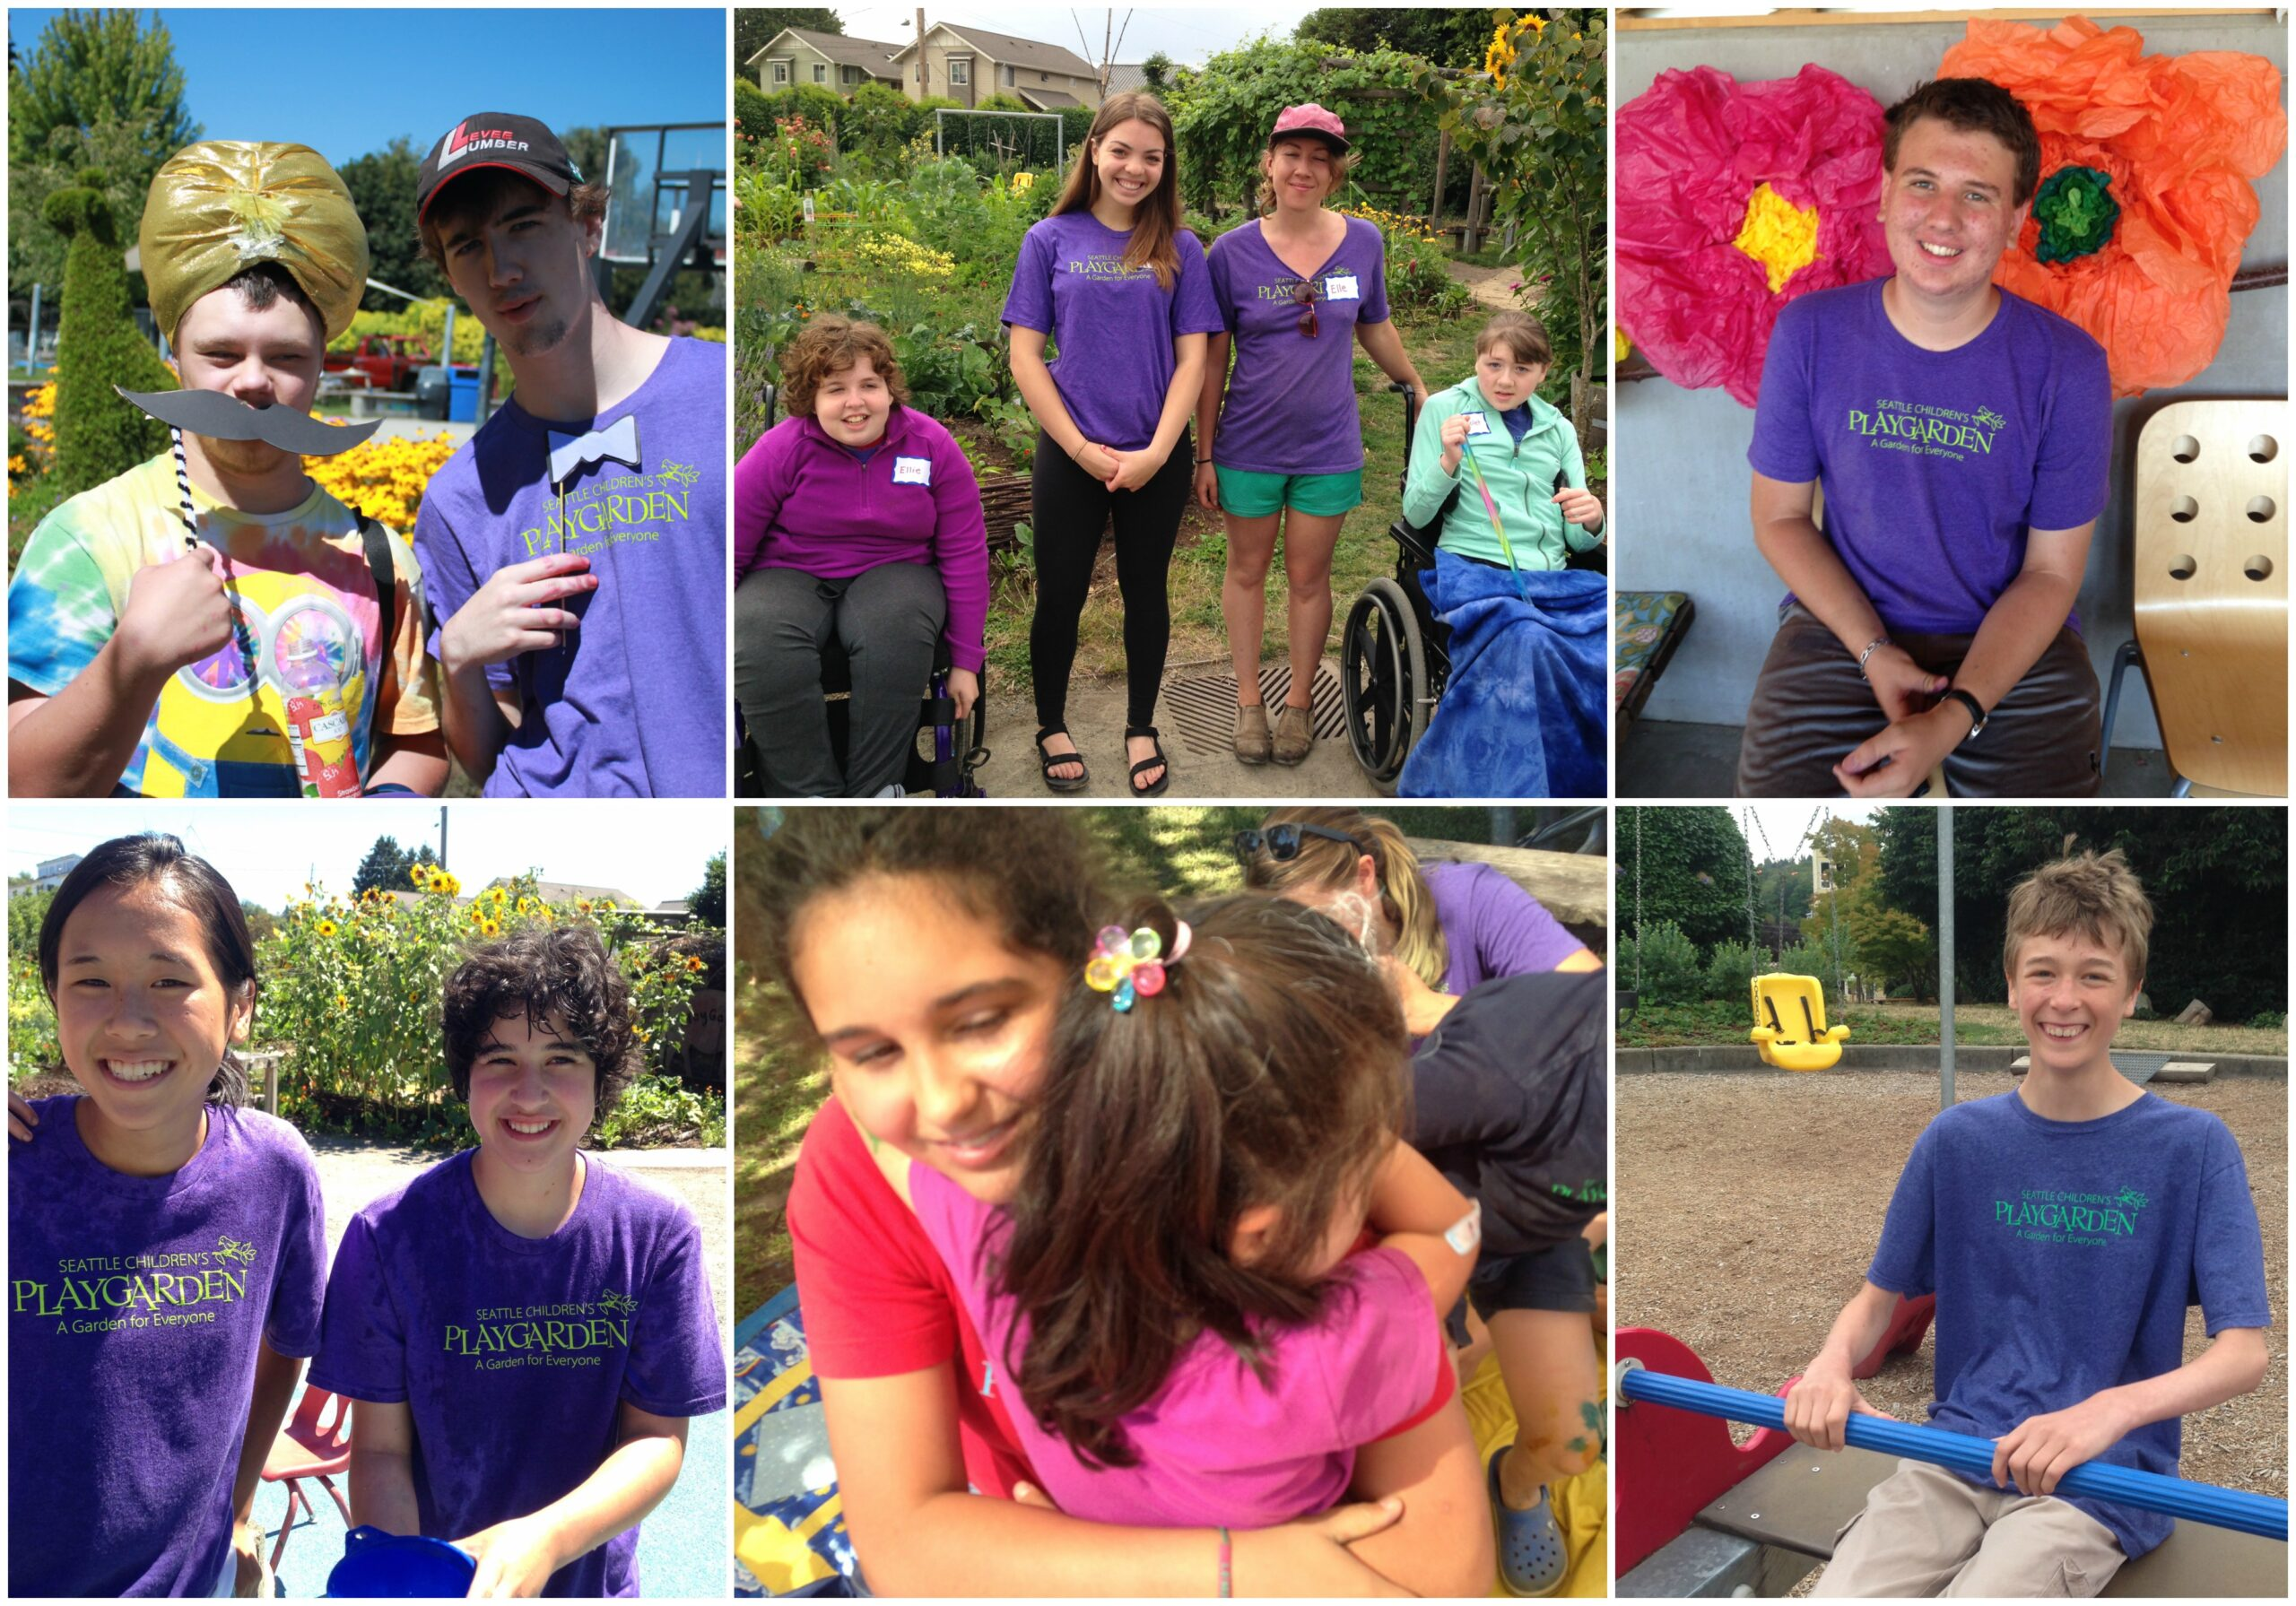 Collage of campers and junior counselors at the PlayGarden